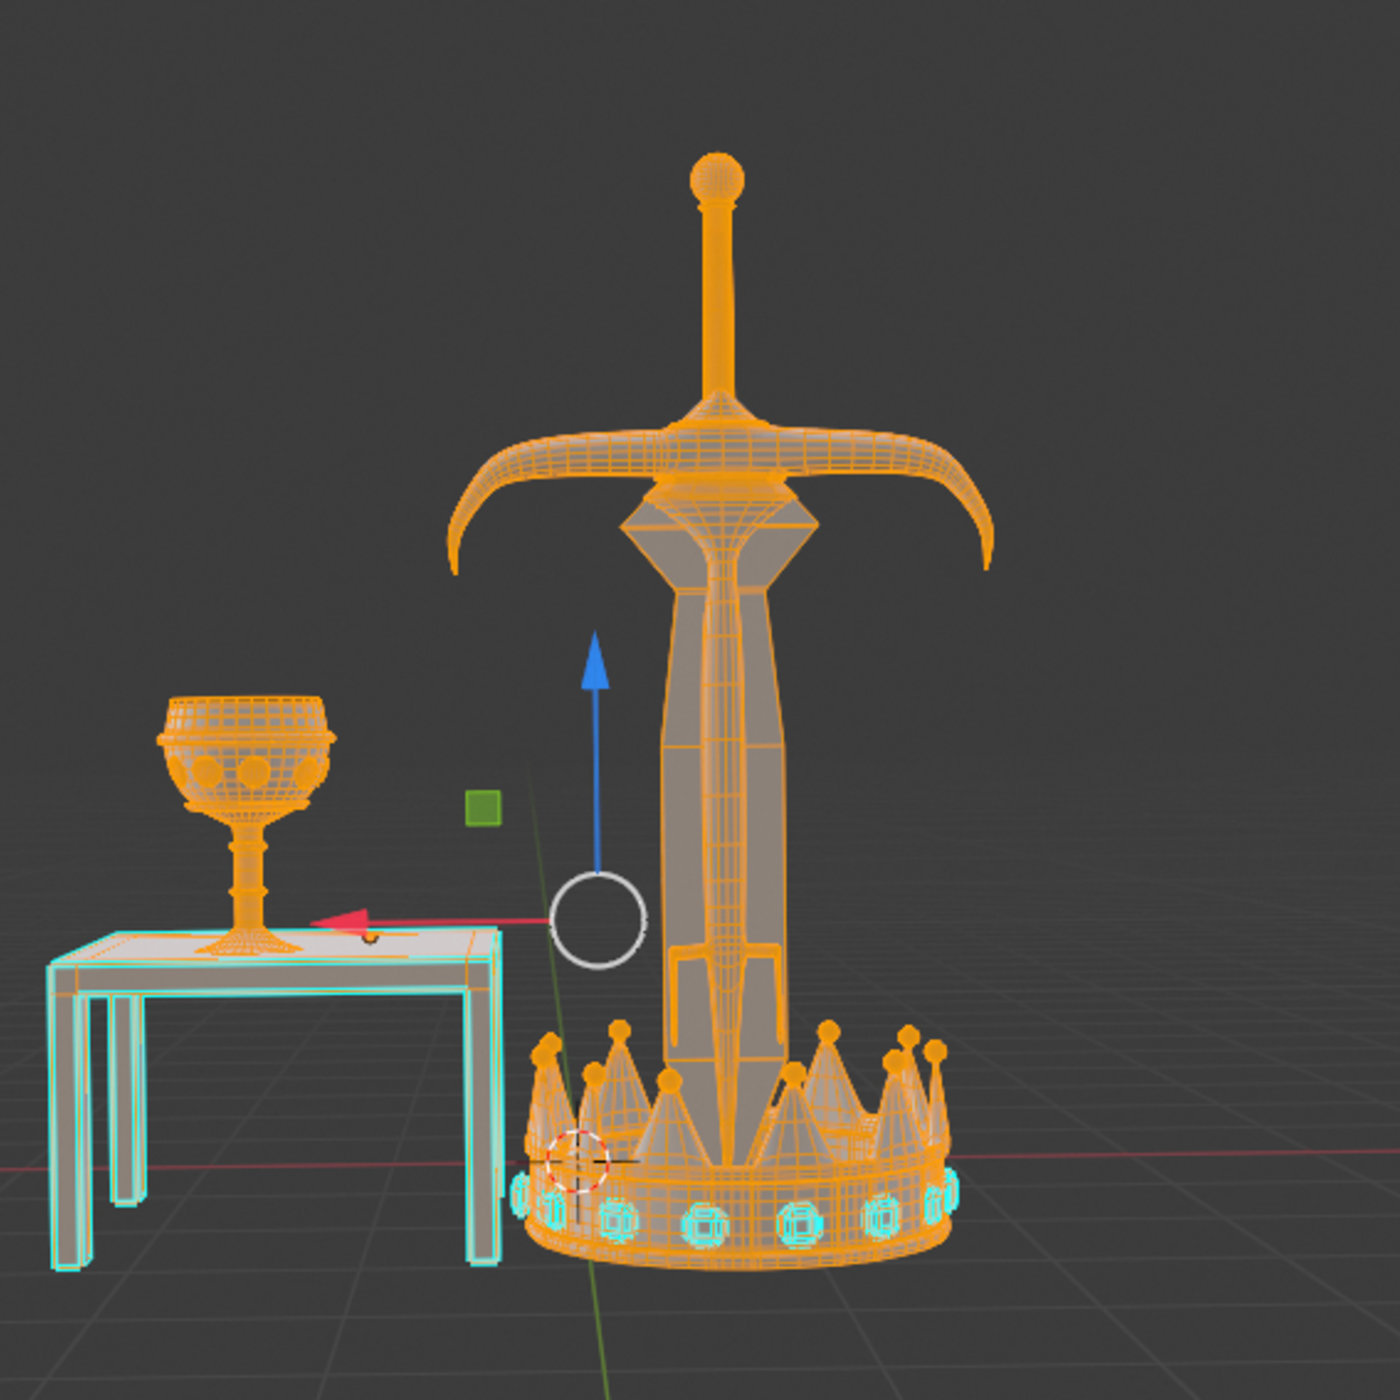 Sword, Crown, and Cup